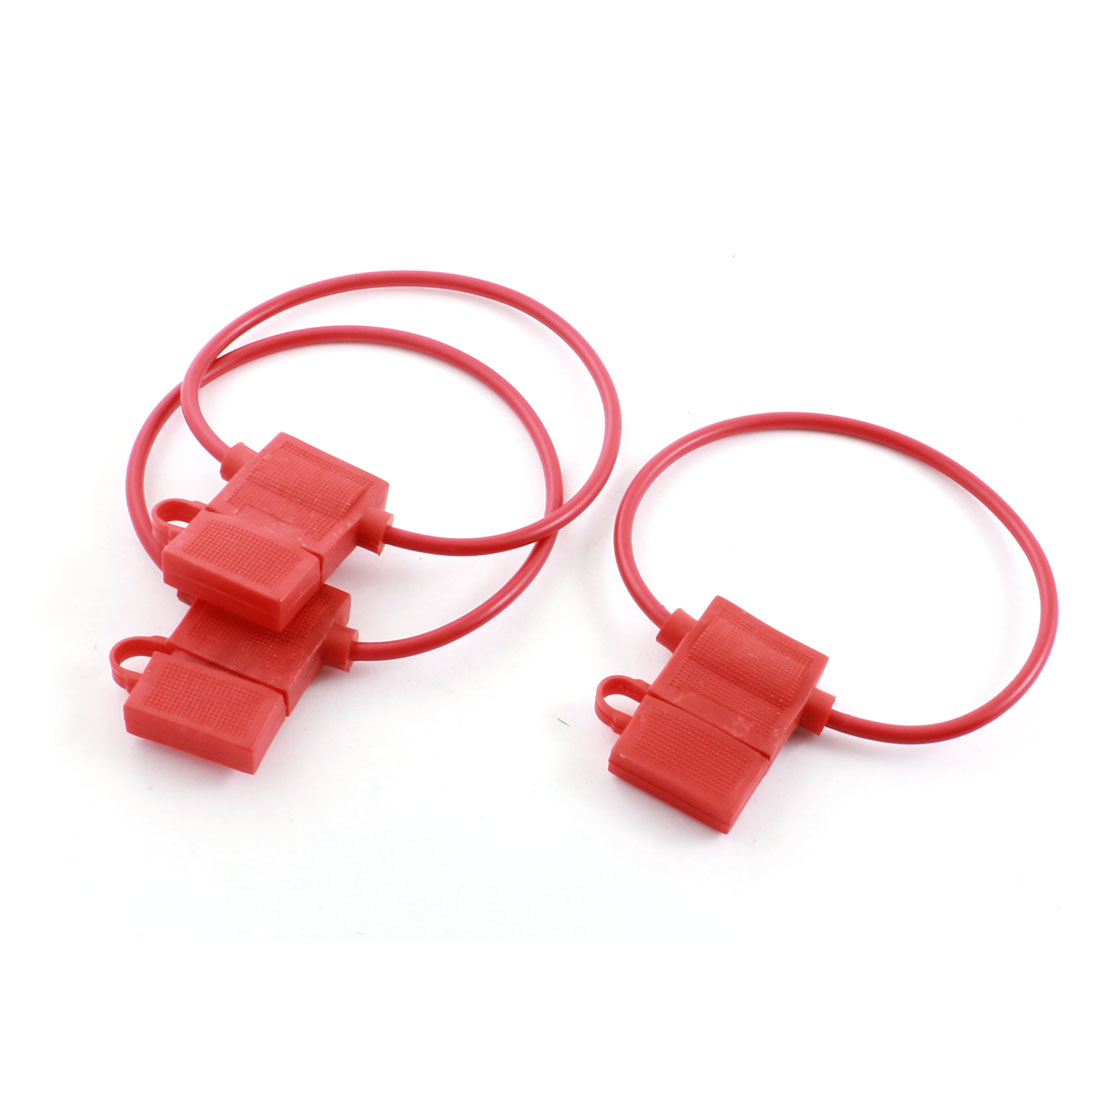 3pcs Red Shell Audio ATC Blade Inline Wired Fuse Holder Case Box for Auto Car Truck